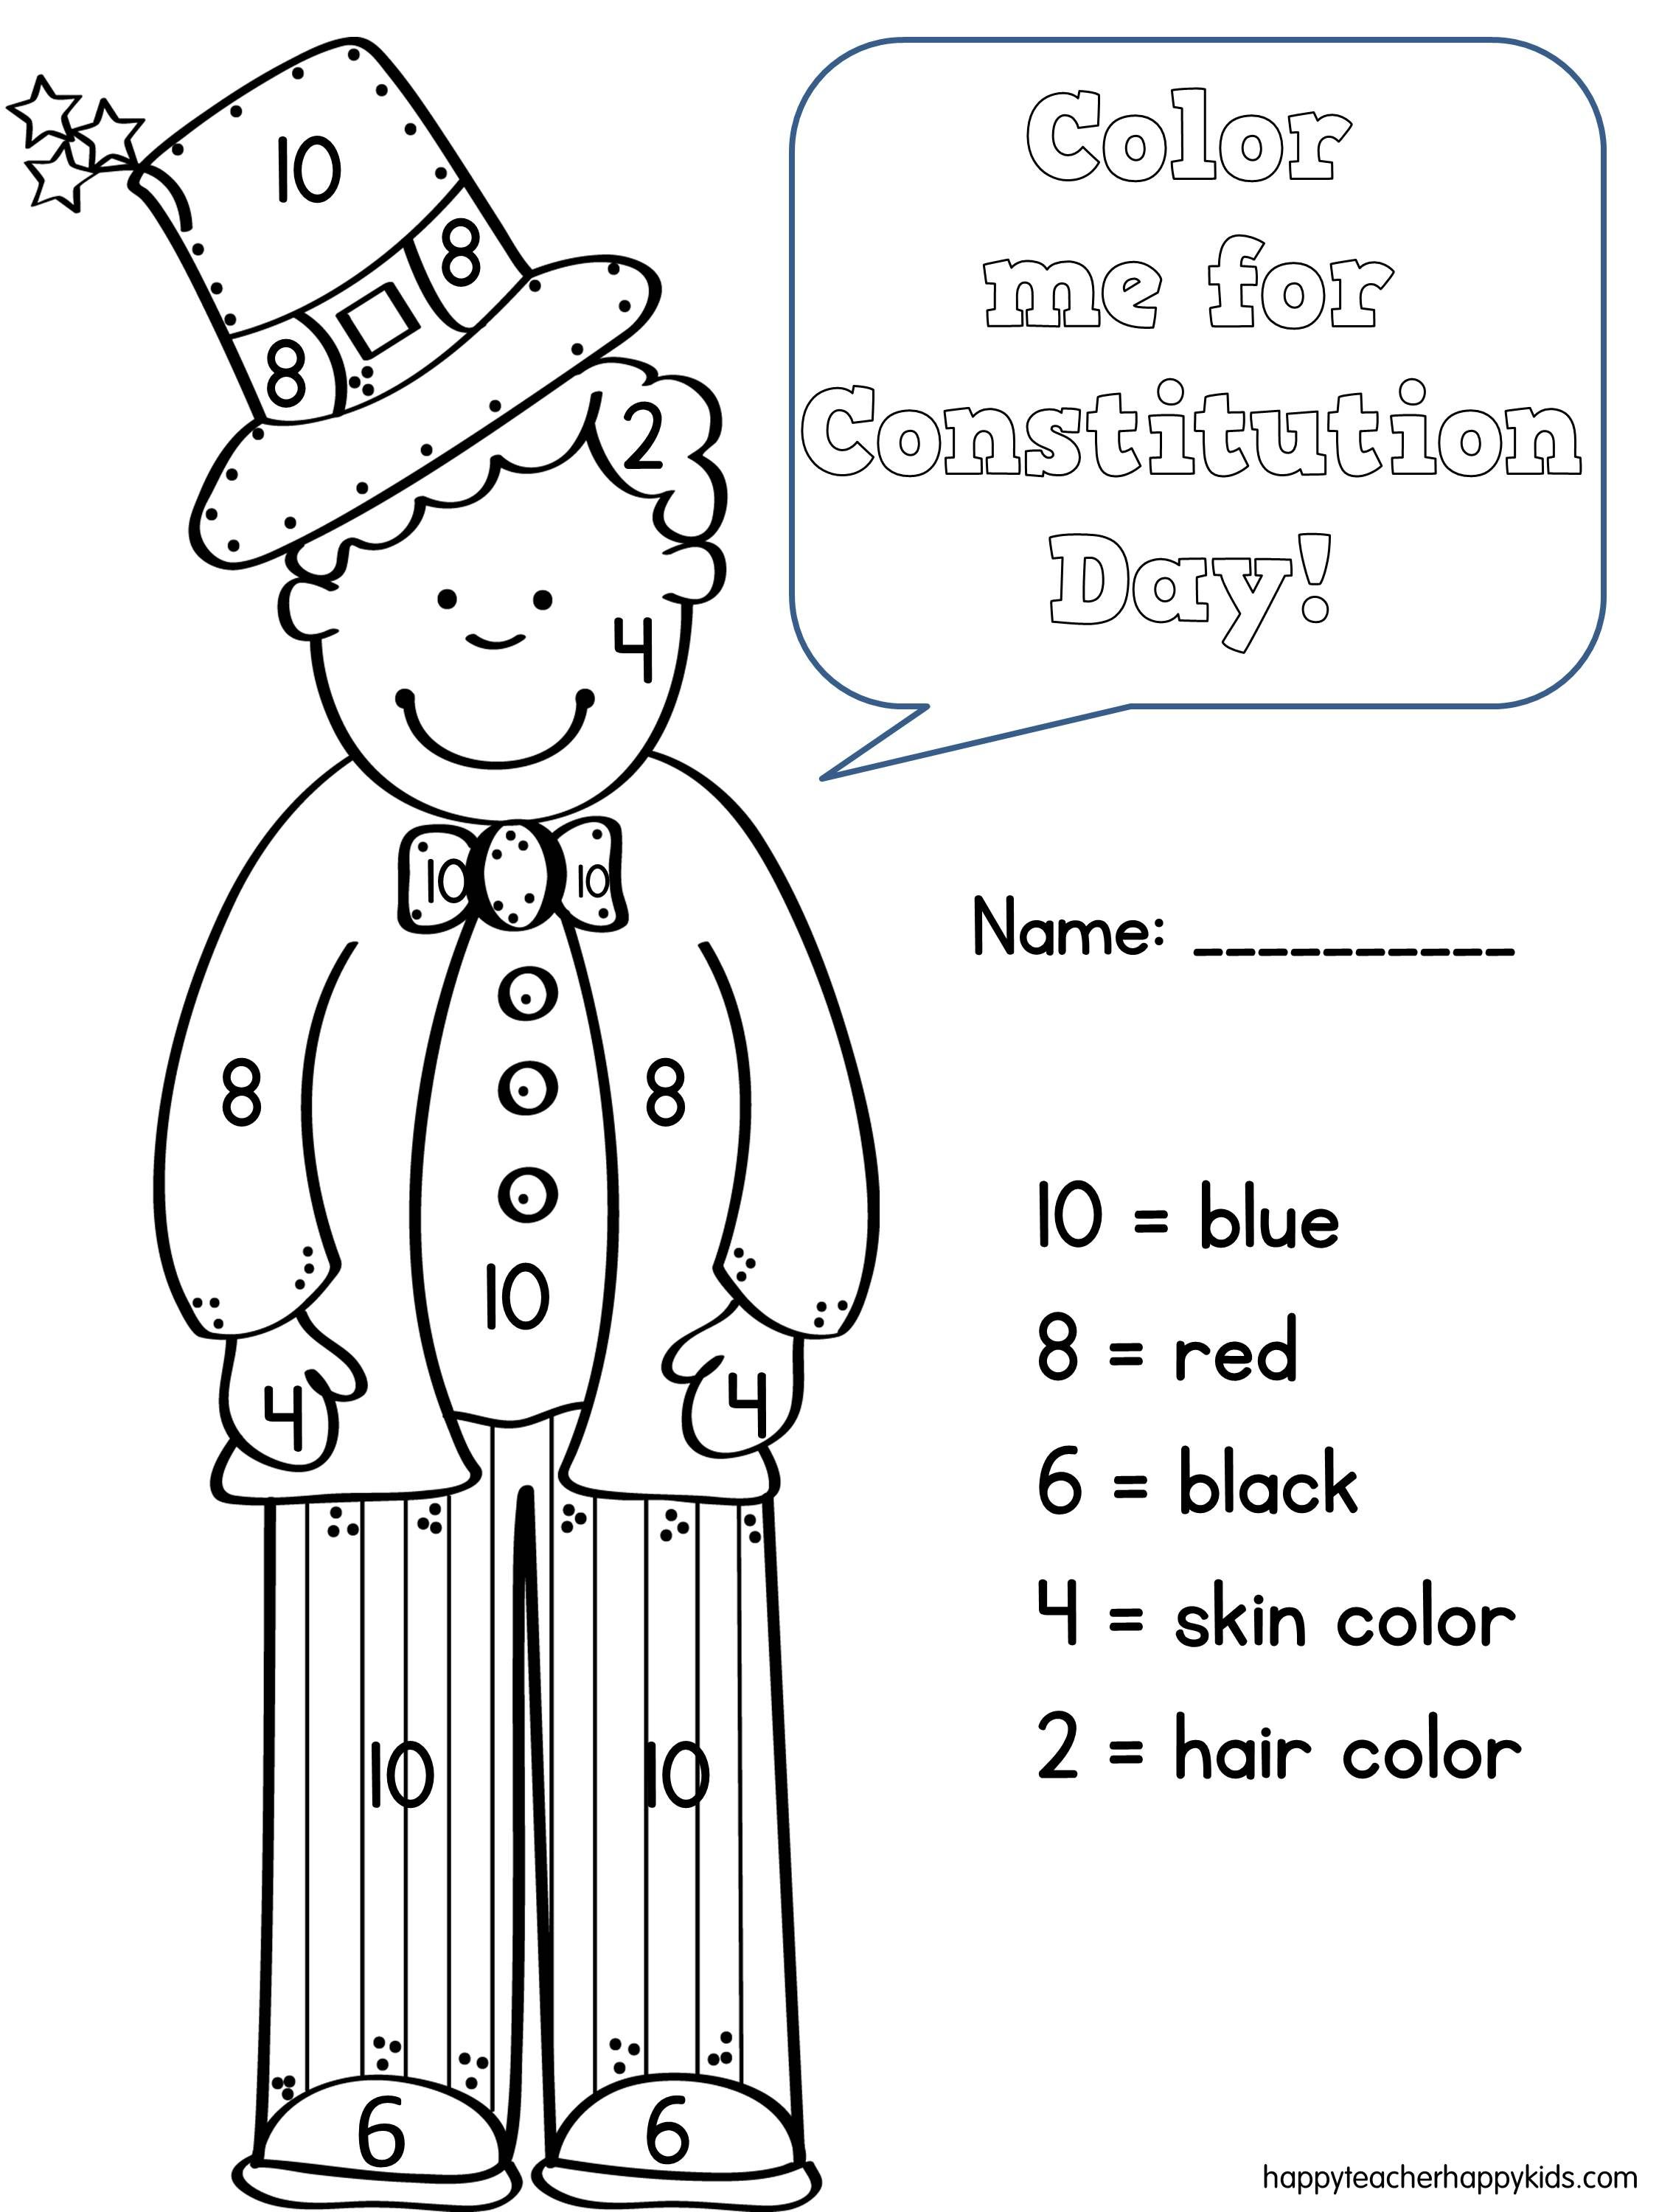 Constitution Day Coloring Pages Www With Canadian Mounties Royal Mounted Police Coloring Pages Ebcs